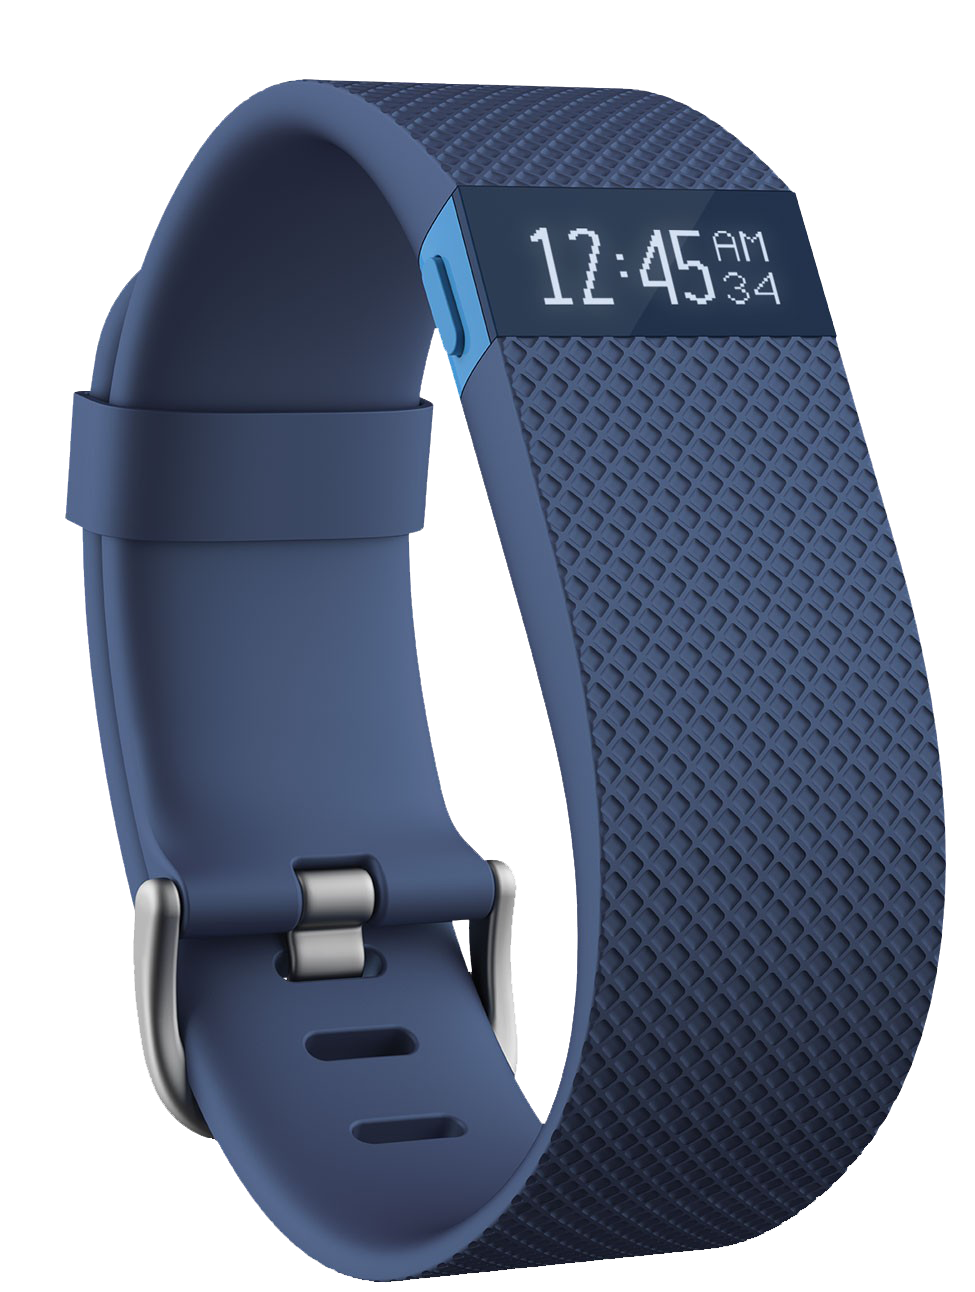 Winning a Fitbit motivated me to become healthier.It has helped very much inmy exercise planning, gives me a digital read out and diary via my iPhone and desktop PC. I love seeing the running total over time. -